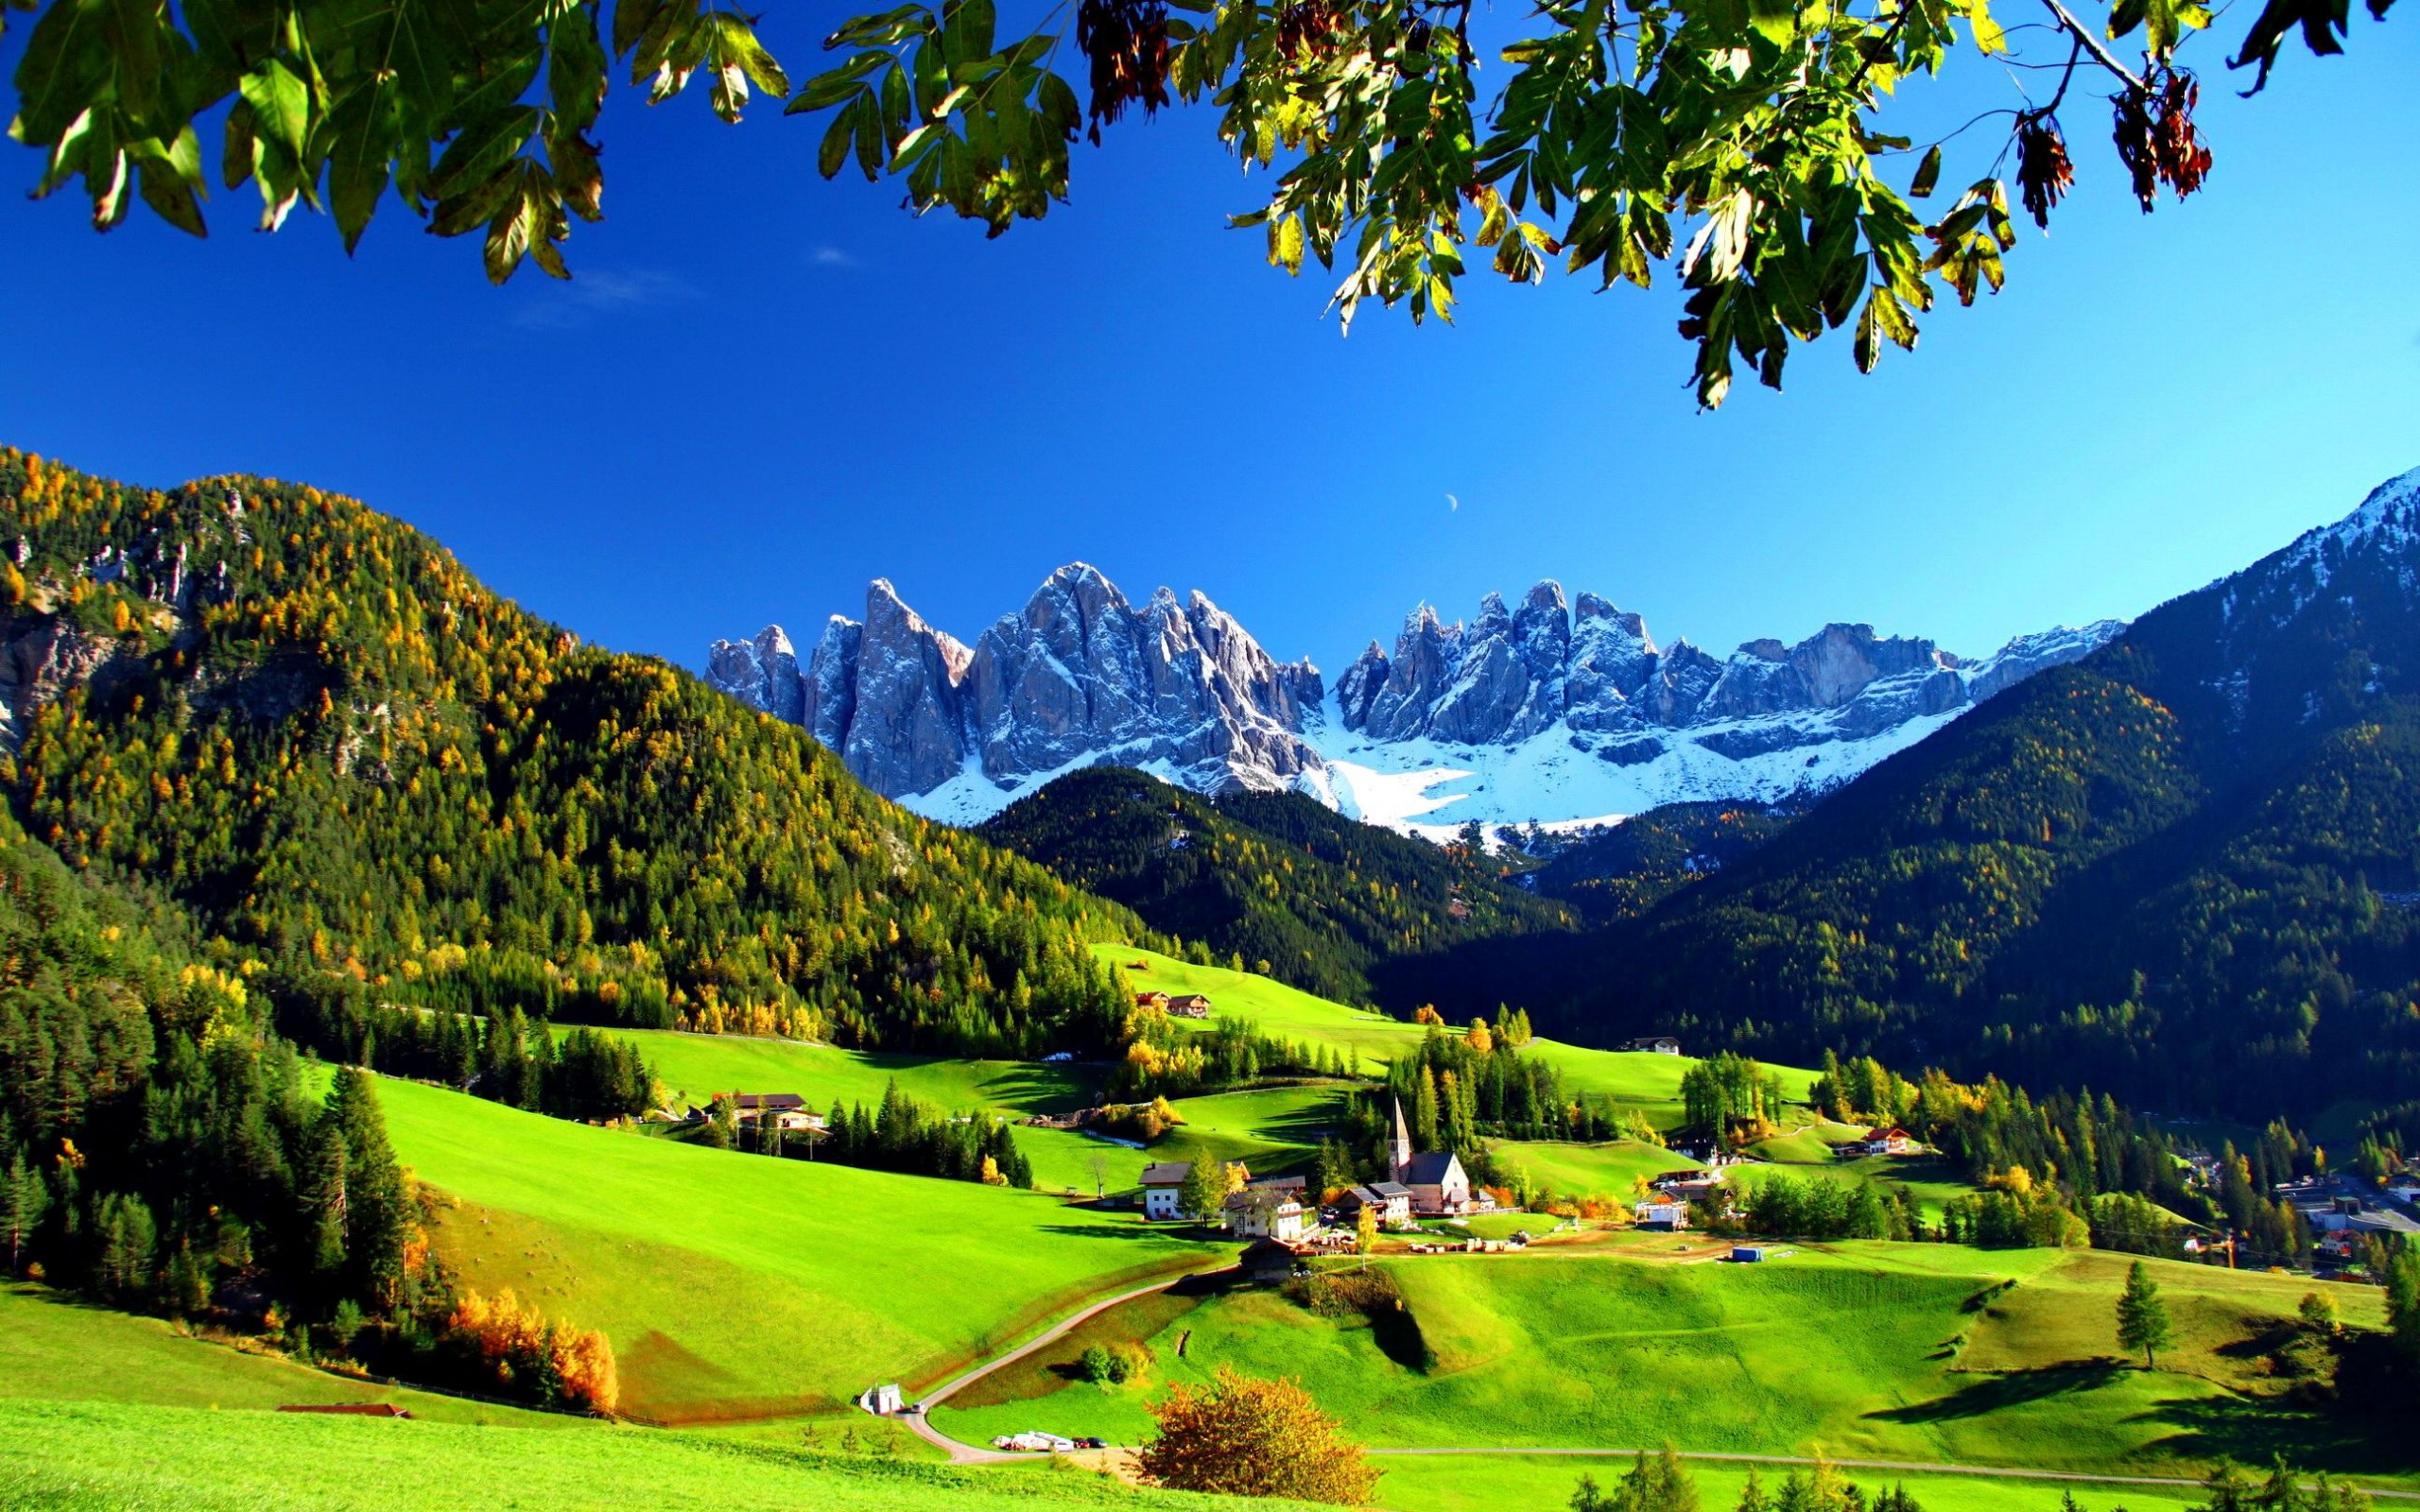 Small village in val di funes italy hd wallpaper background image 2560x1600 id 689373 - Mountain screensavers free ...